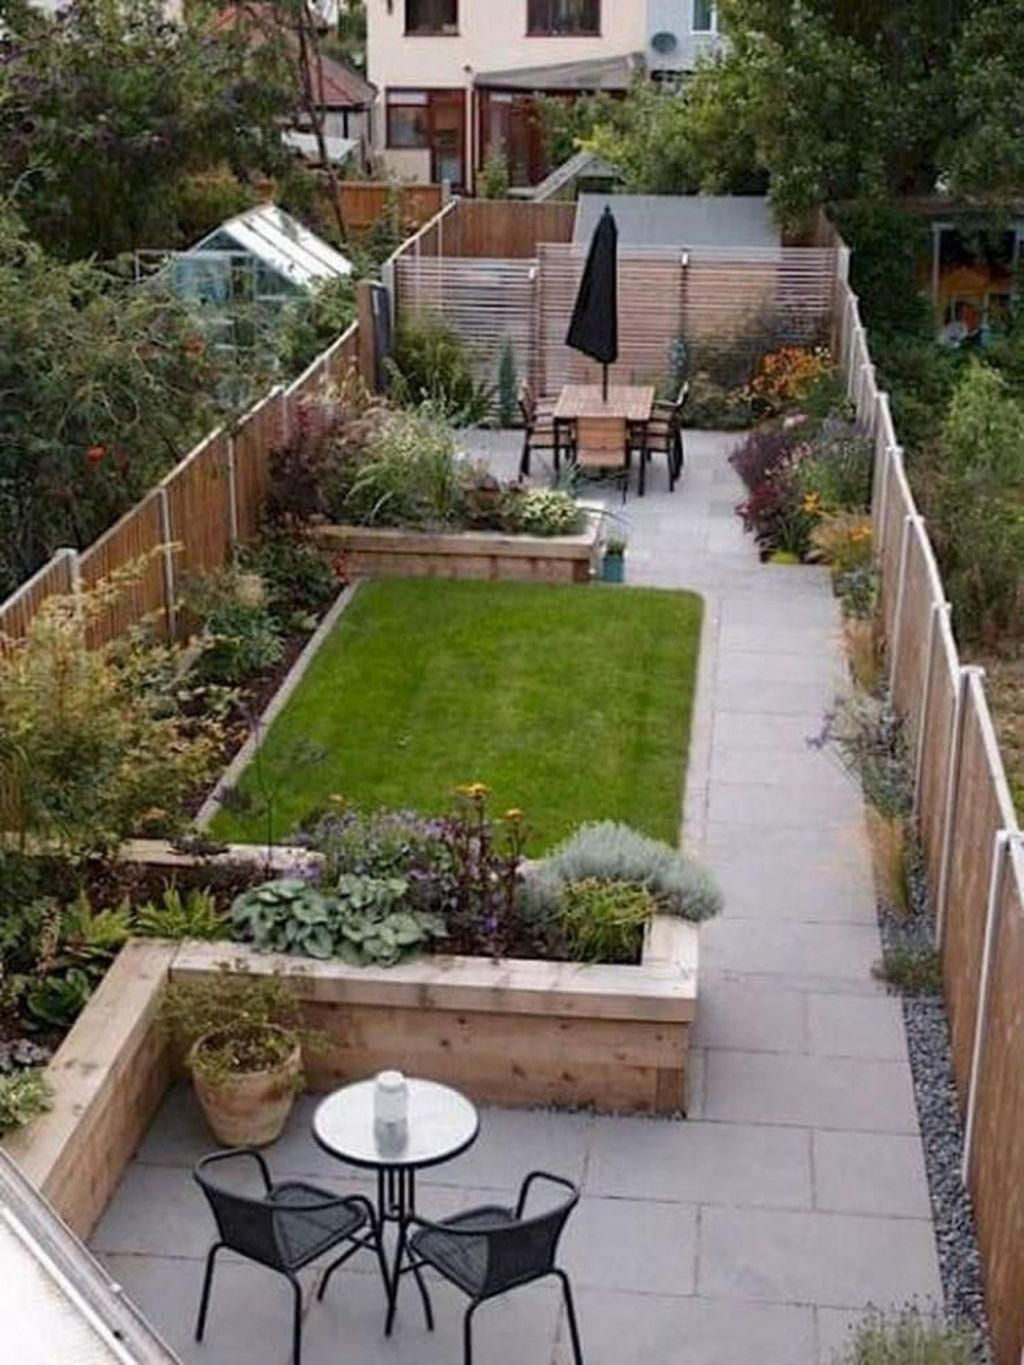 Remodeling Tips For Your Backyard Does Not Need To Be Expensive